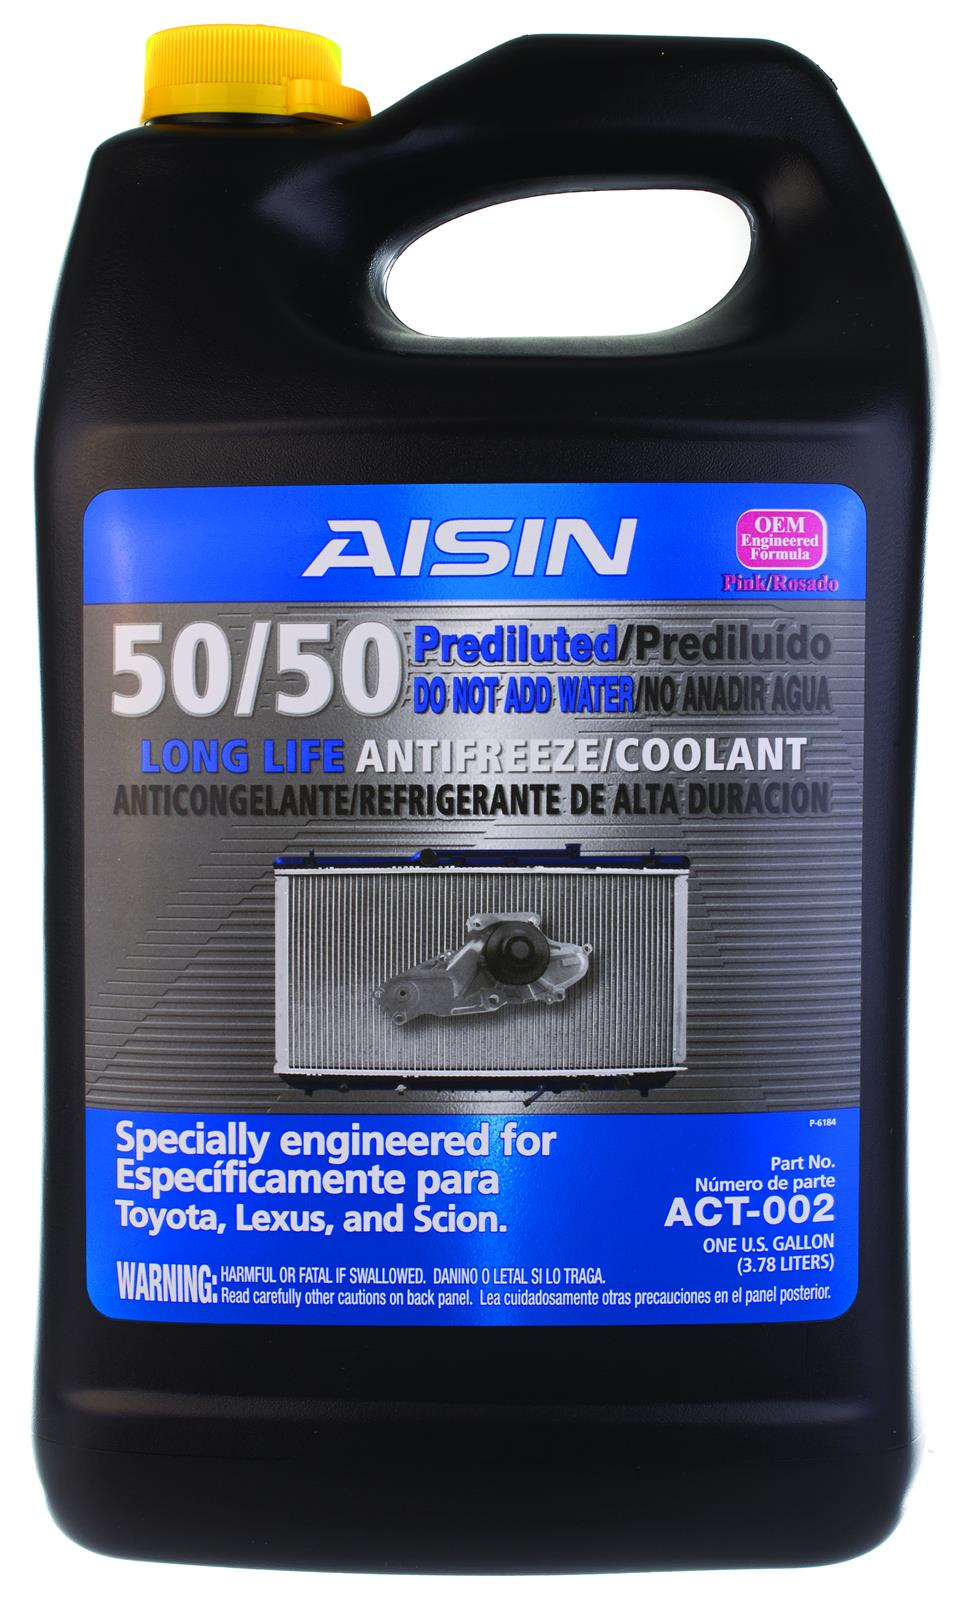 Pink Engine Coolant Aisin 50 Pre Diluted Super Long Life Antifreeze Act 002 Free Shipping On Orders Over 99 At Summit Racing